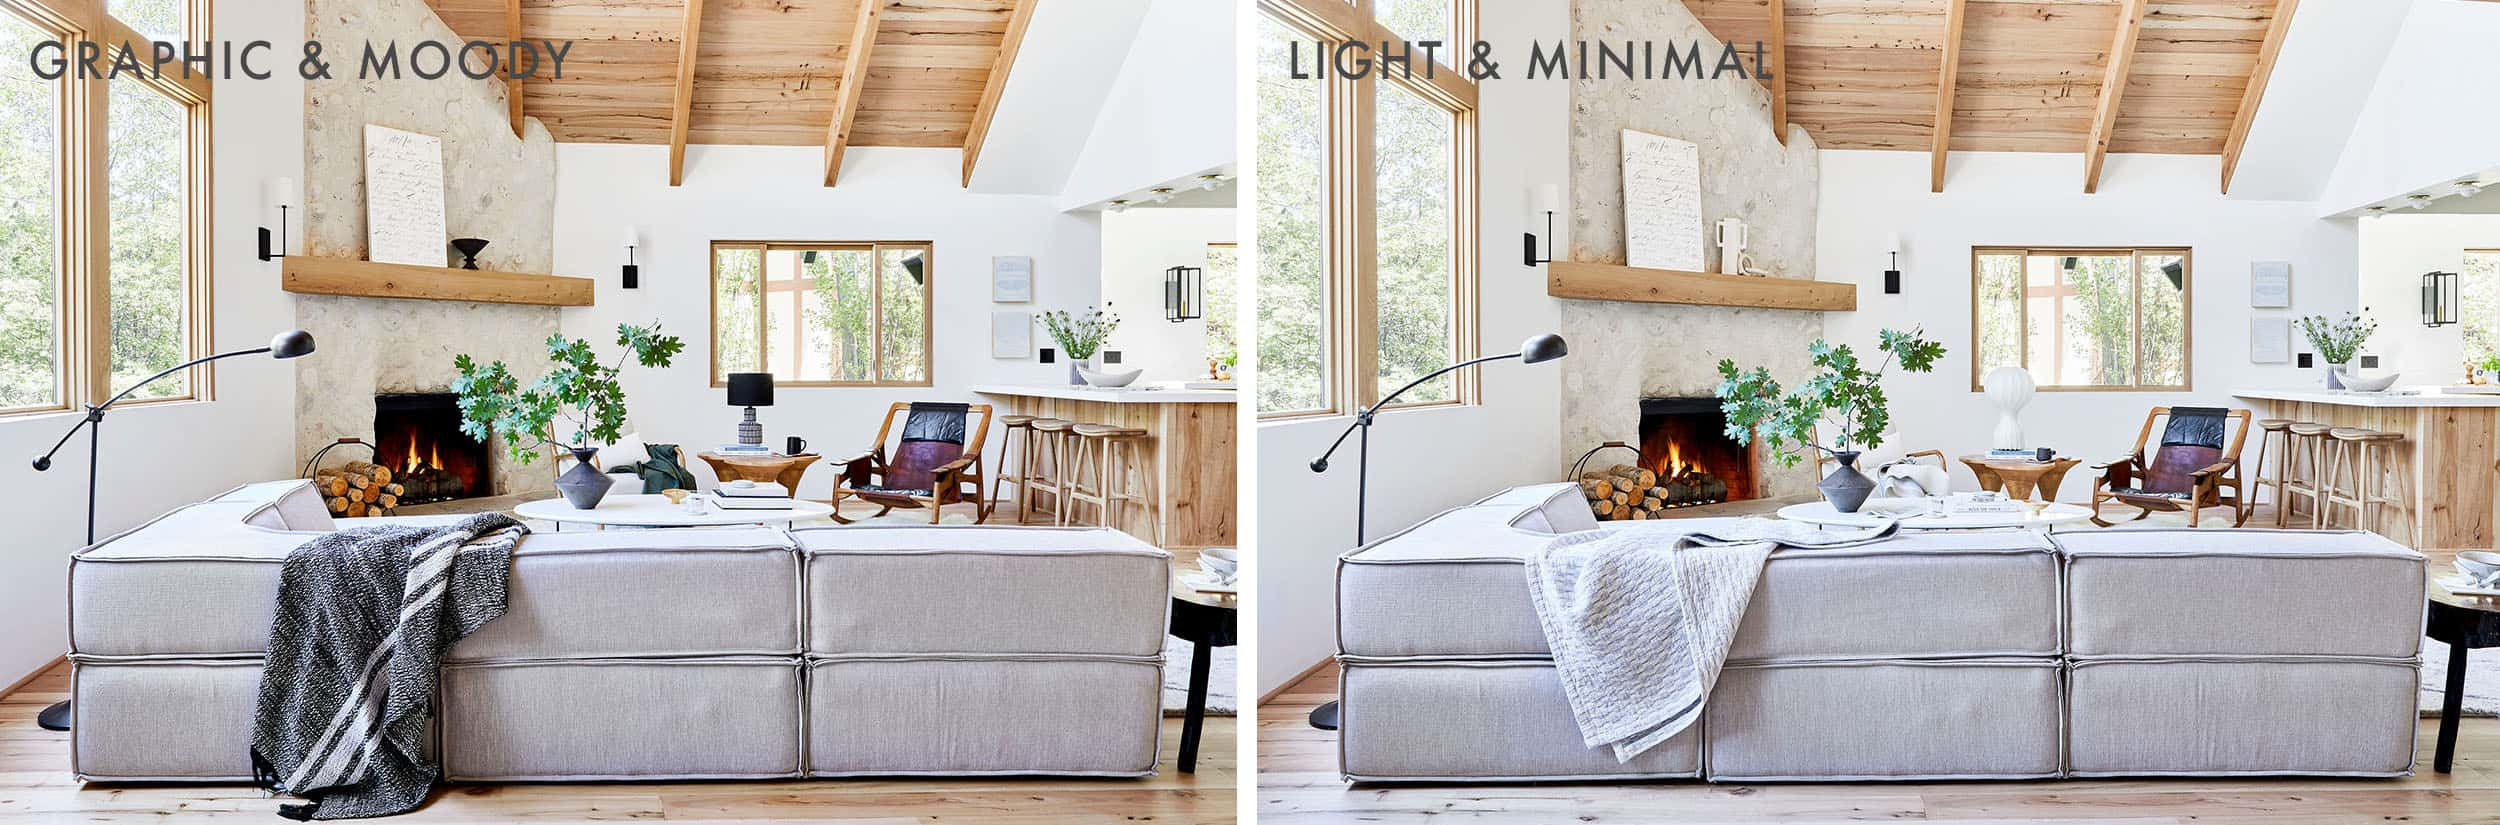 Emily Henderson House Beautuful Styling Side By Side 1 1